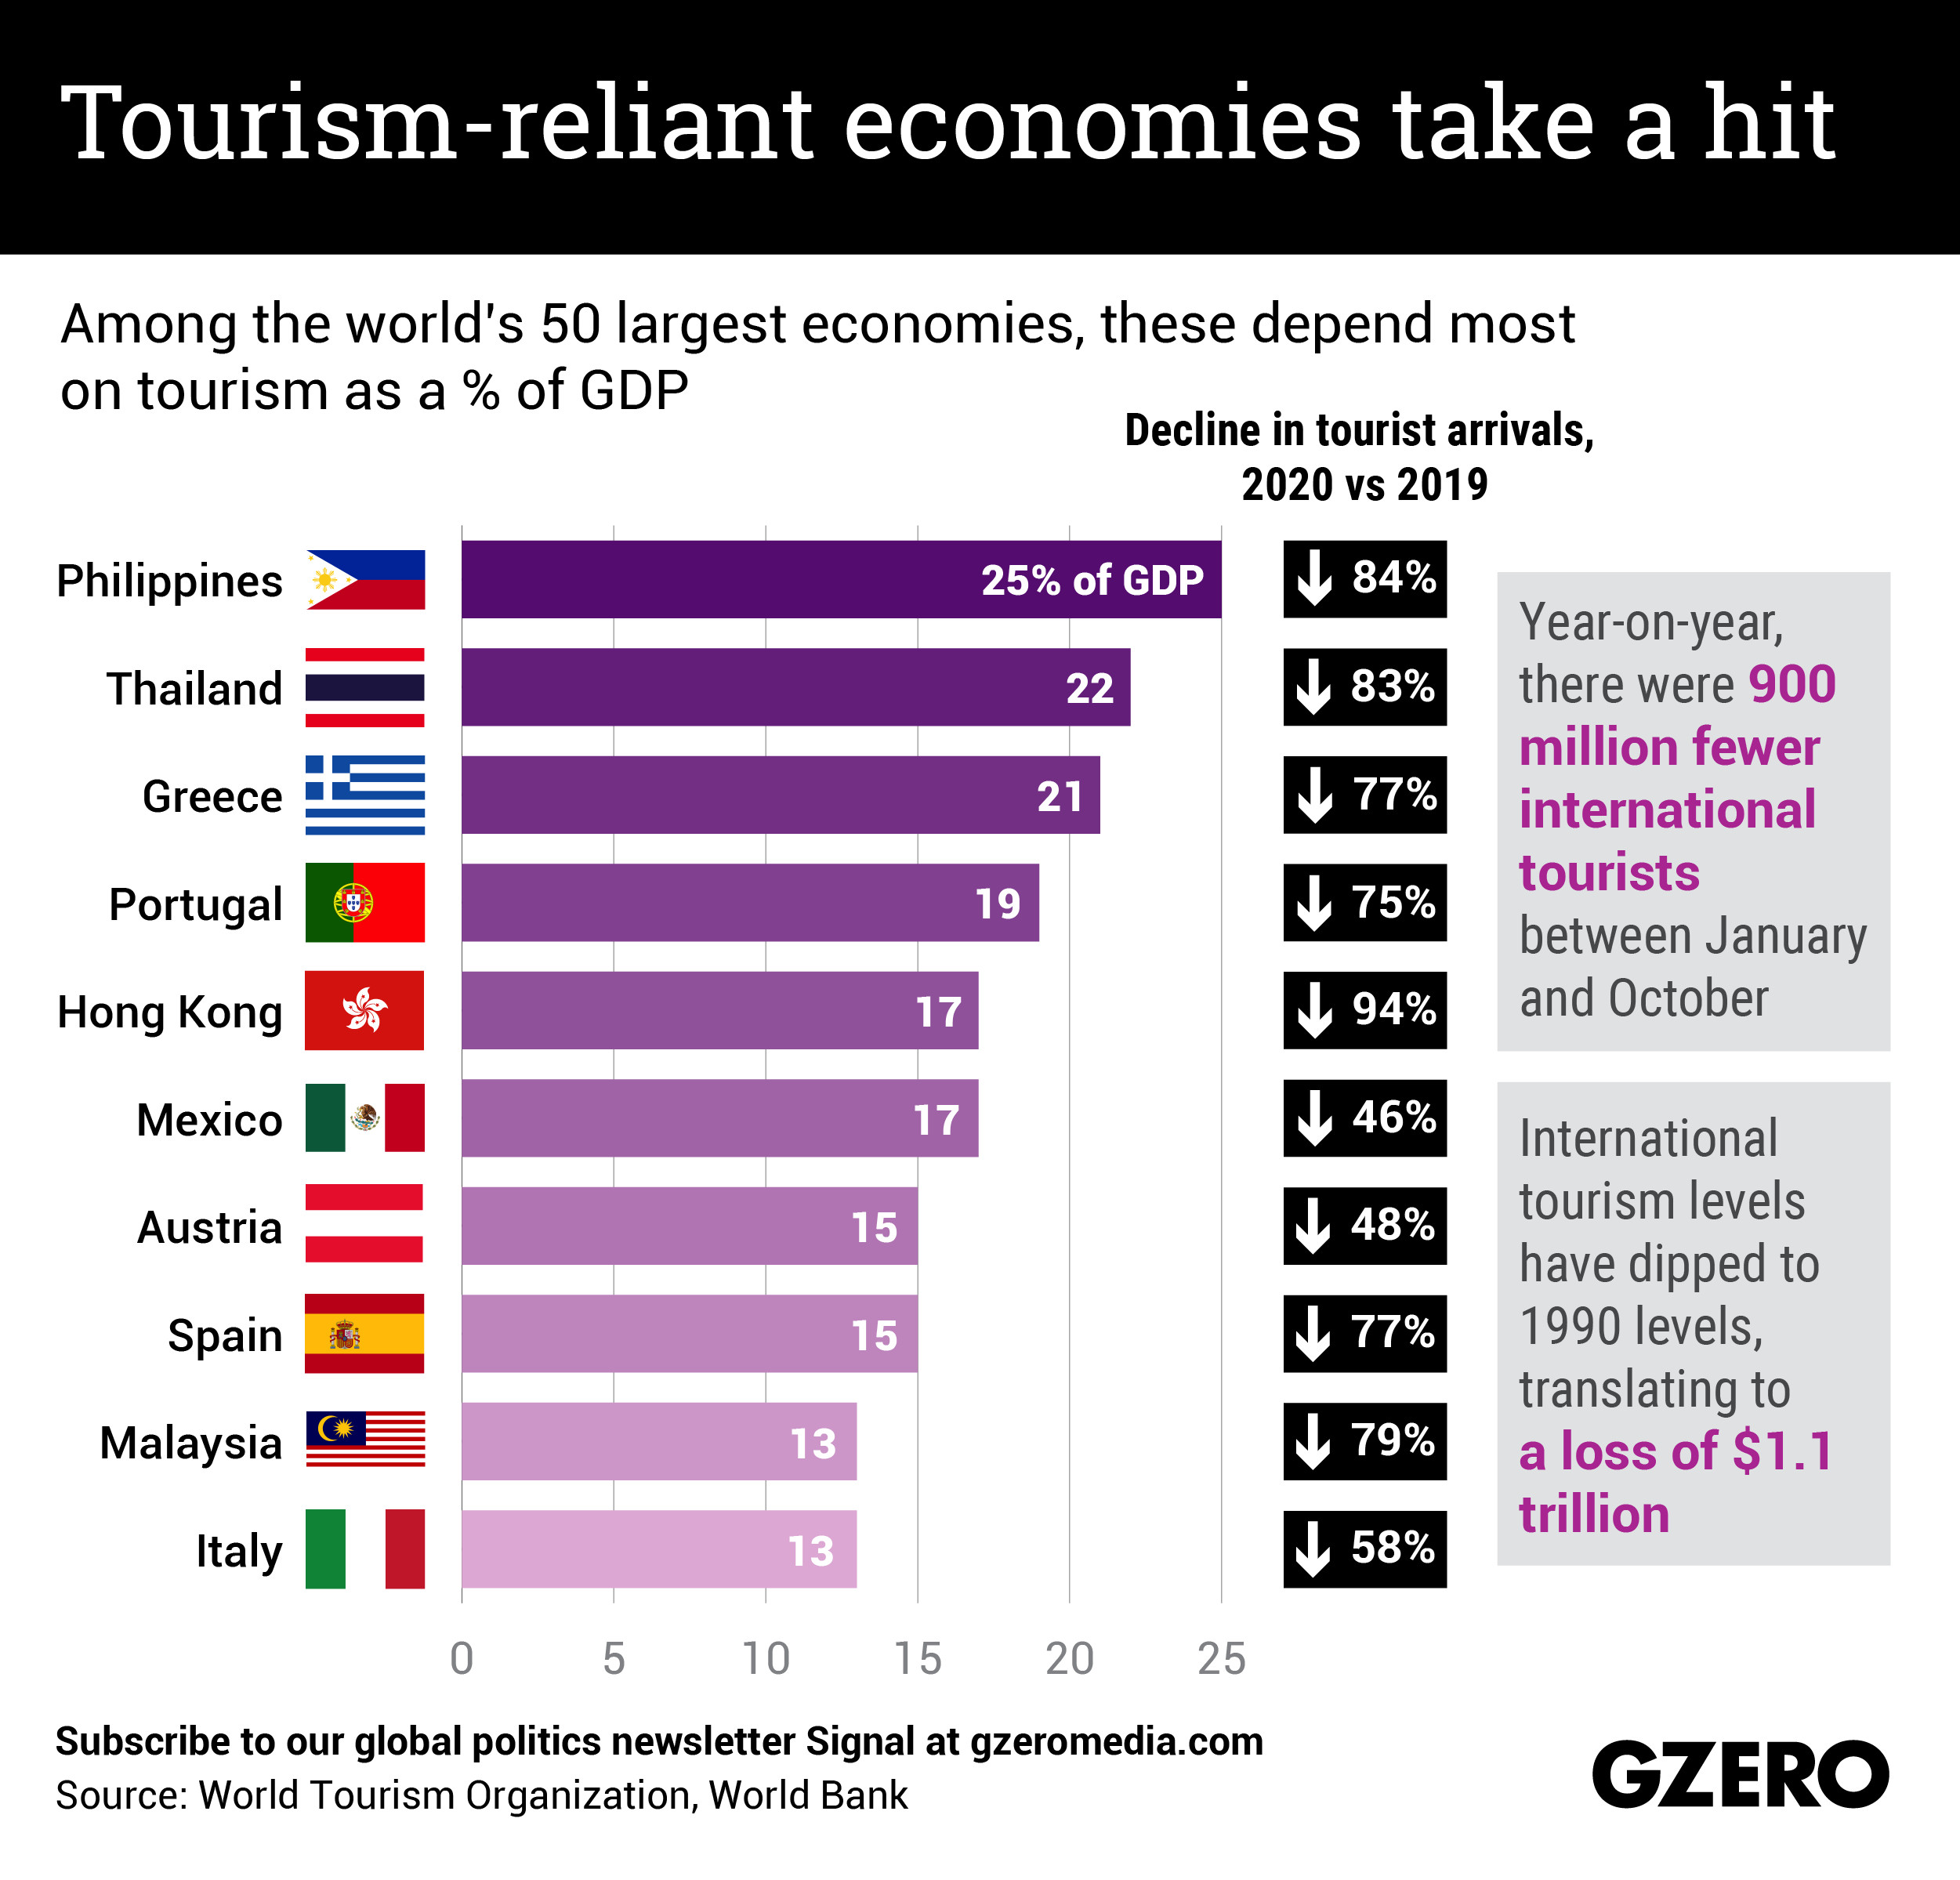 The Graphic Truth: Tourism-reliant economies take a hit